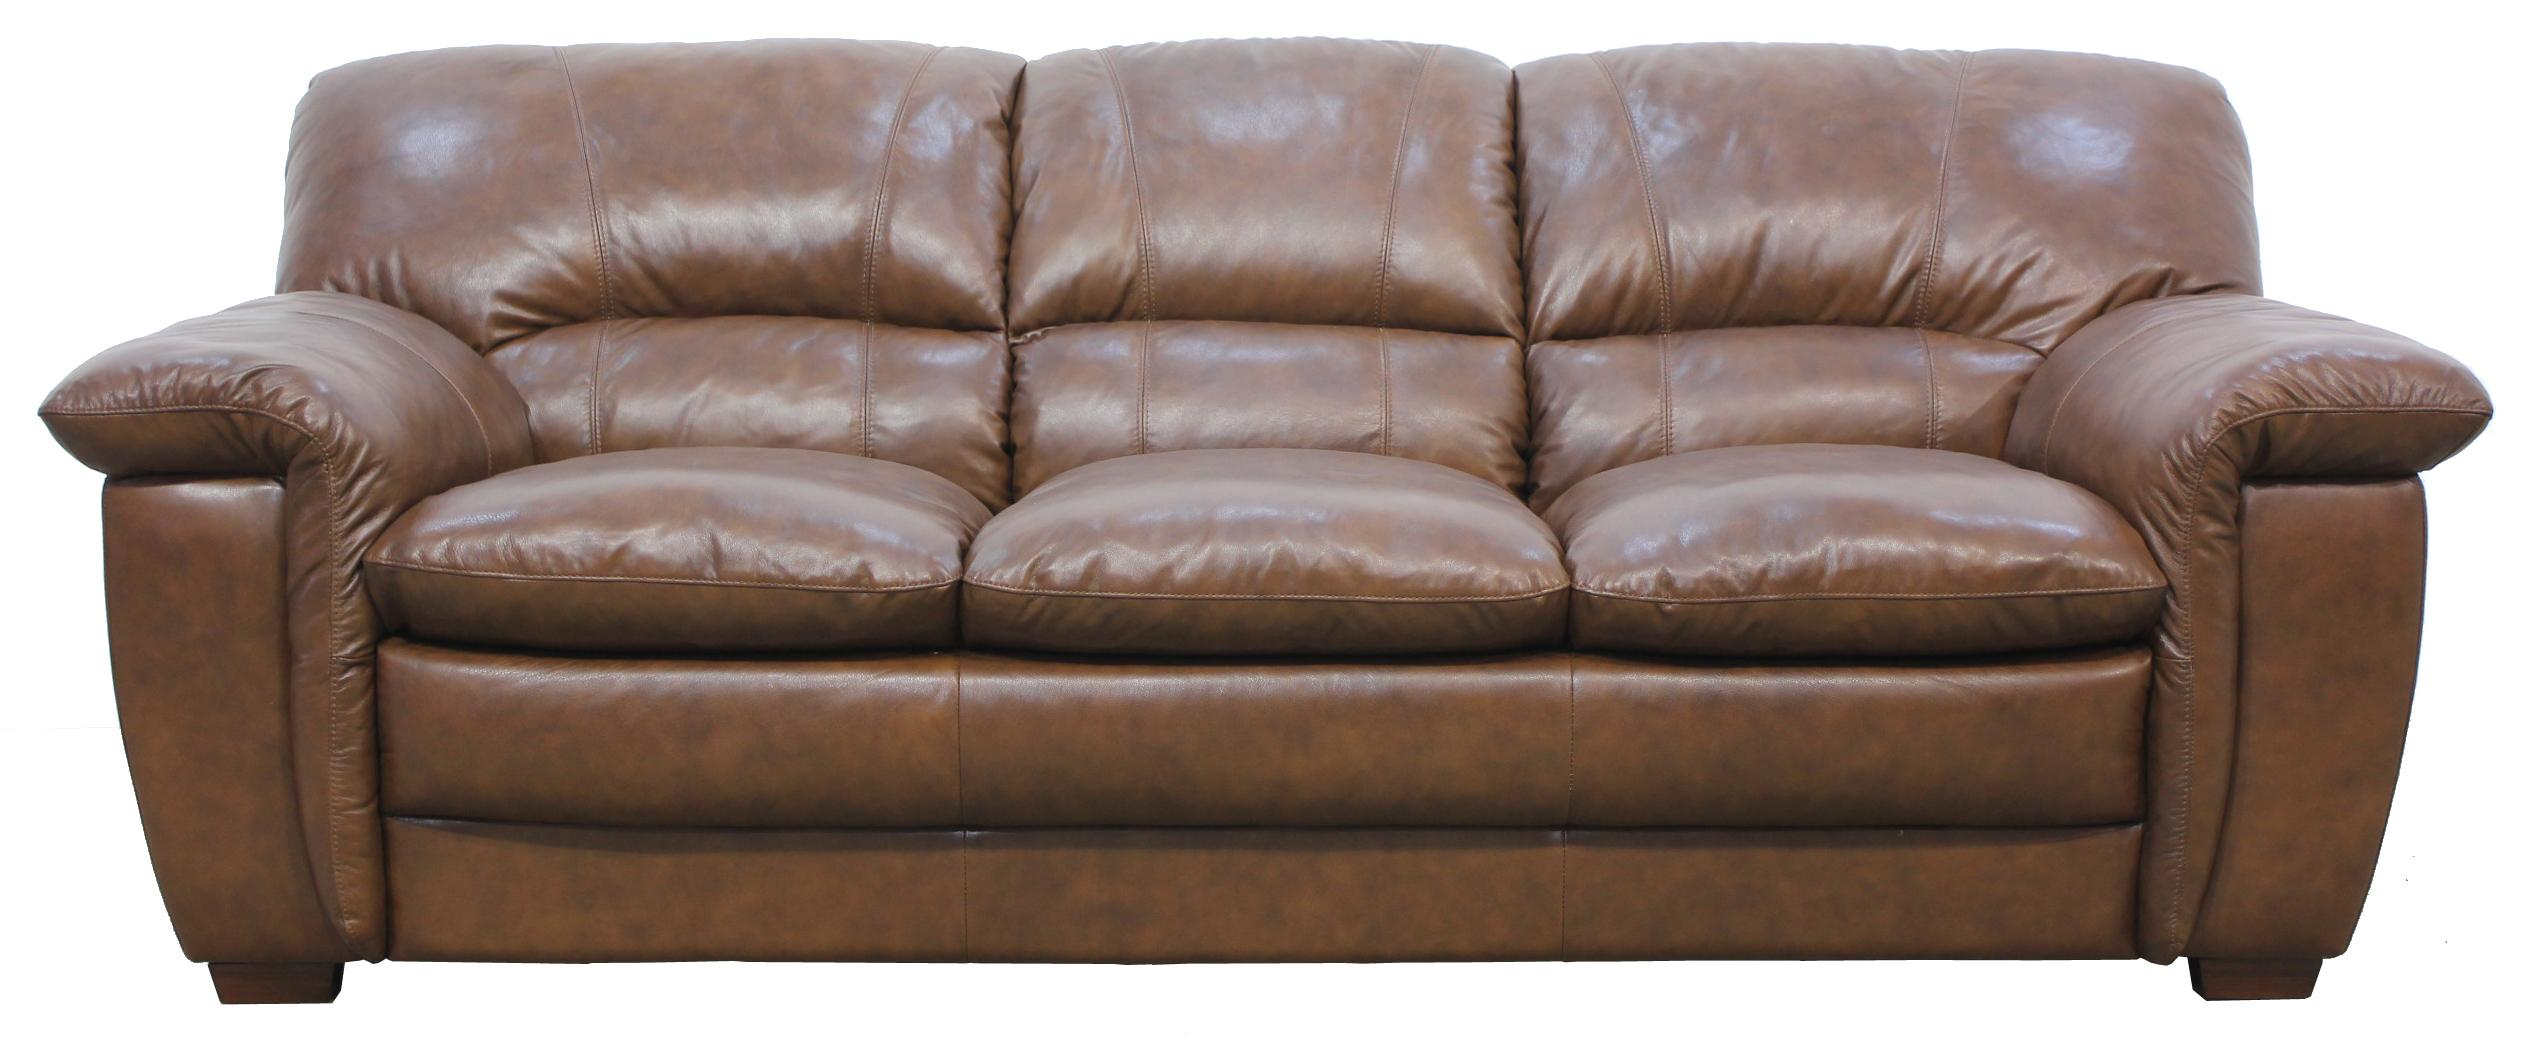 htl sofa range brown leather cheap 824 casual styled stationary for family room